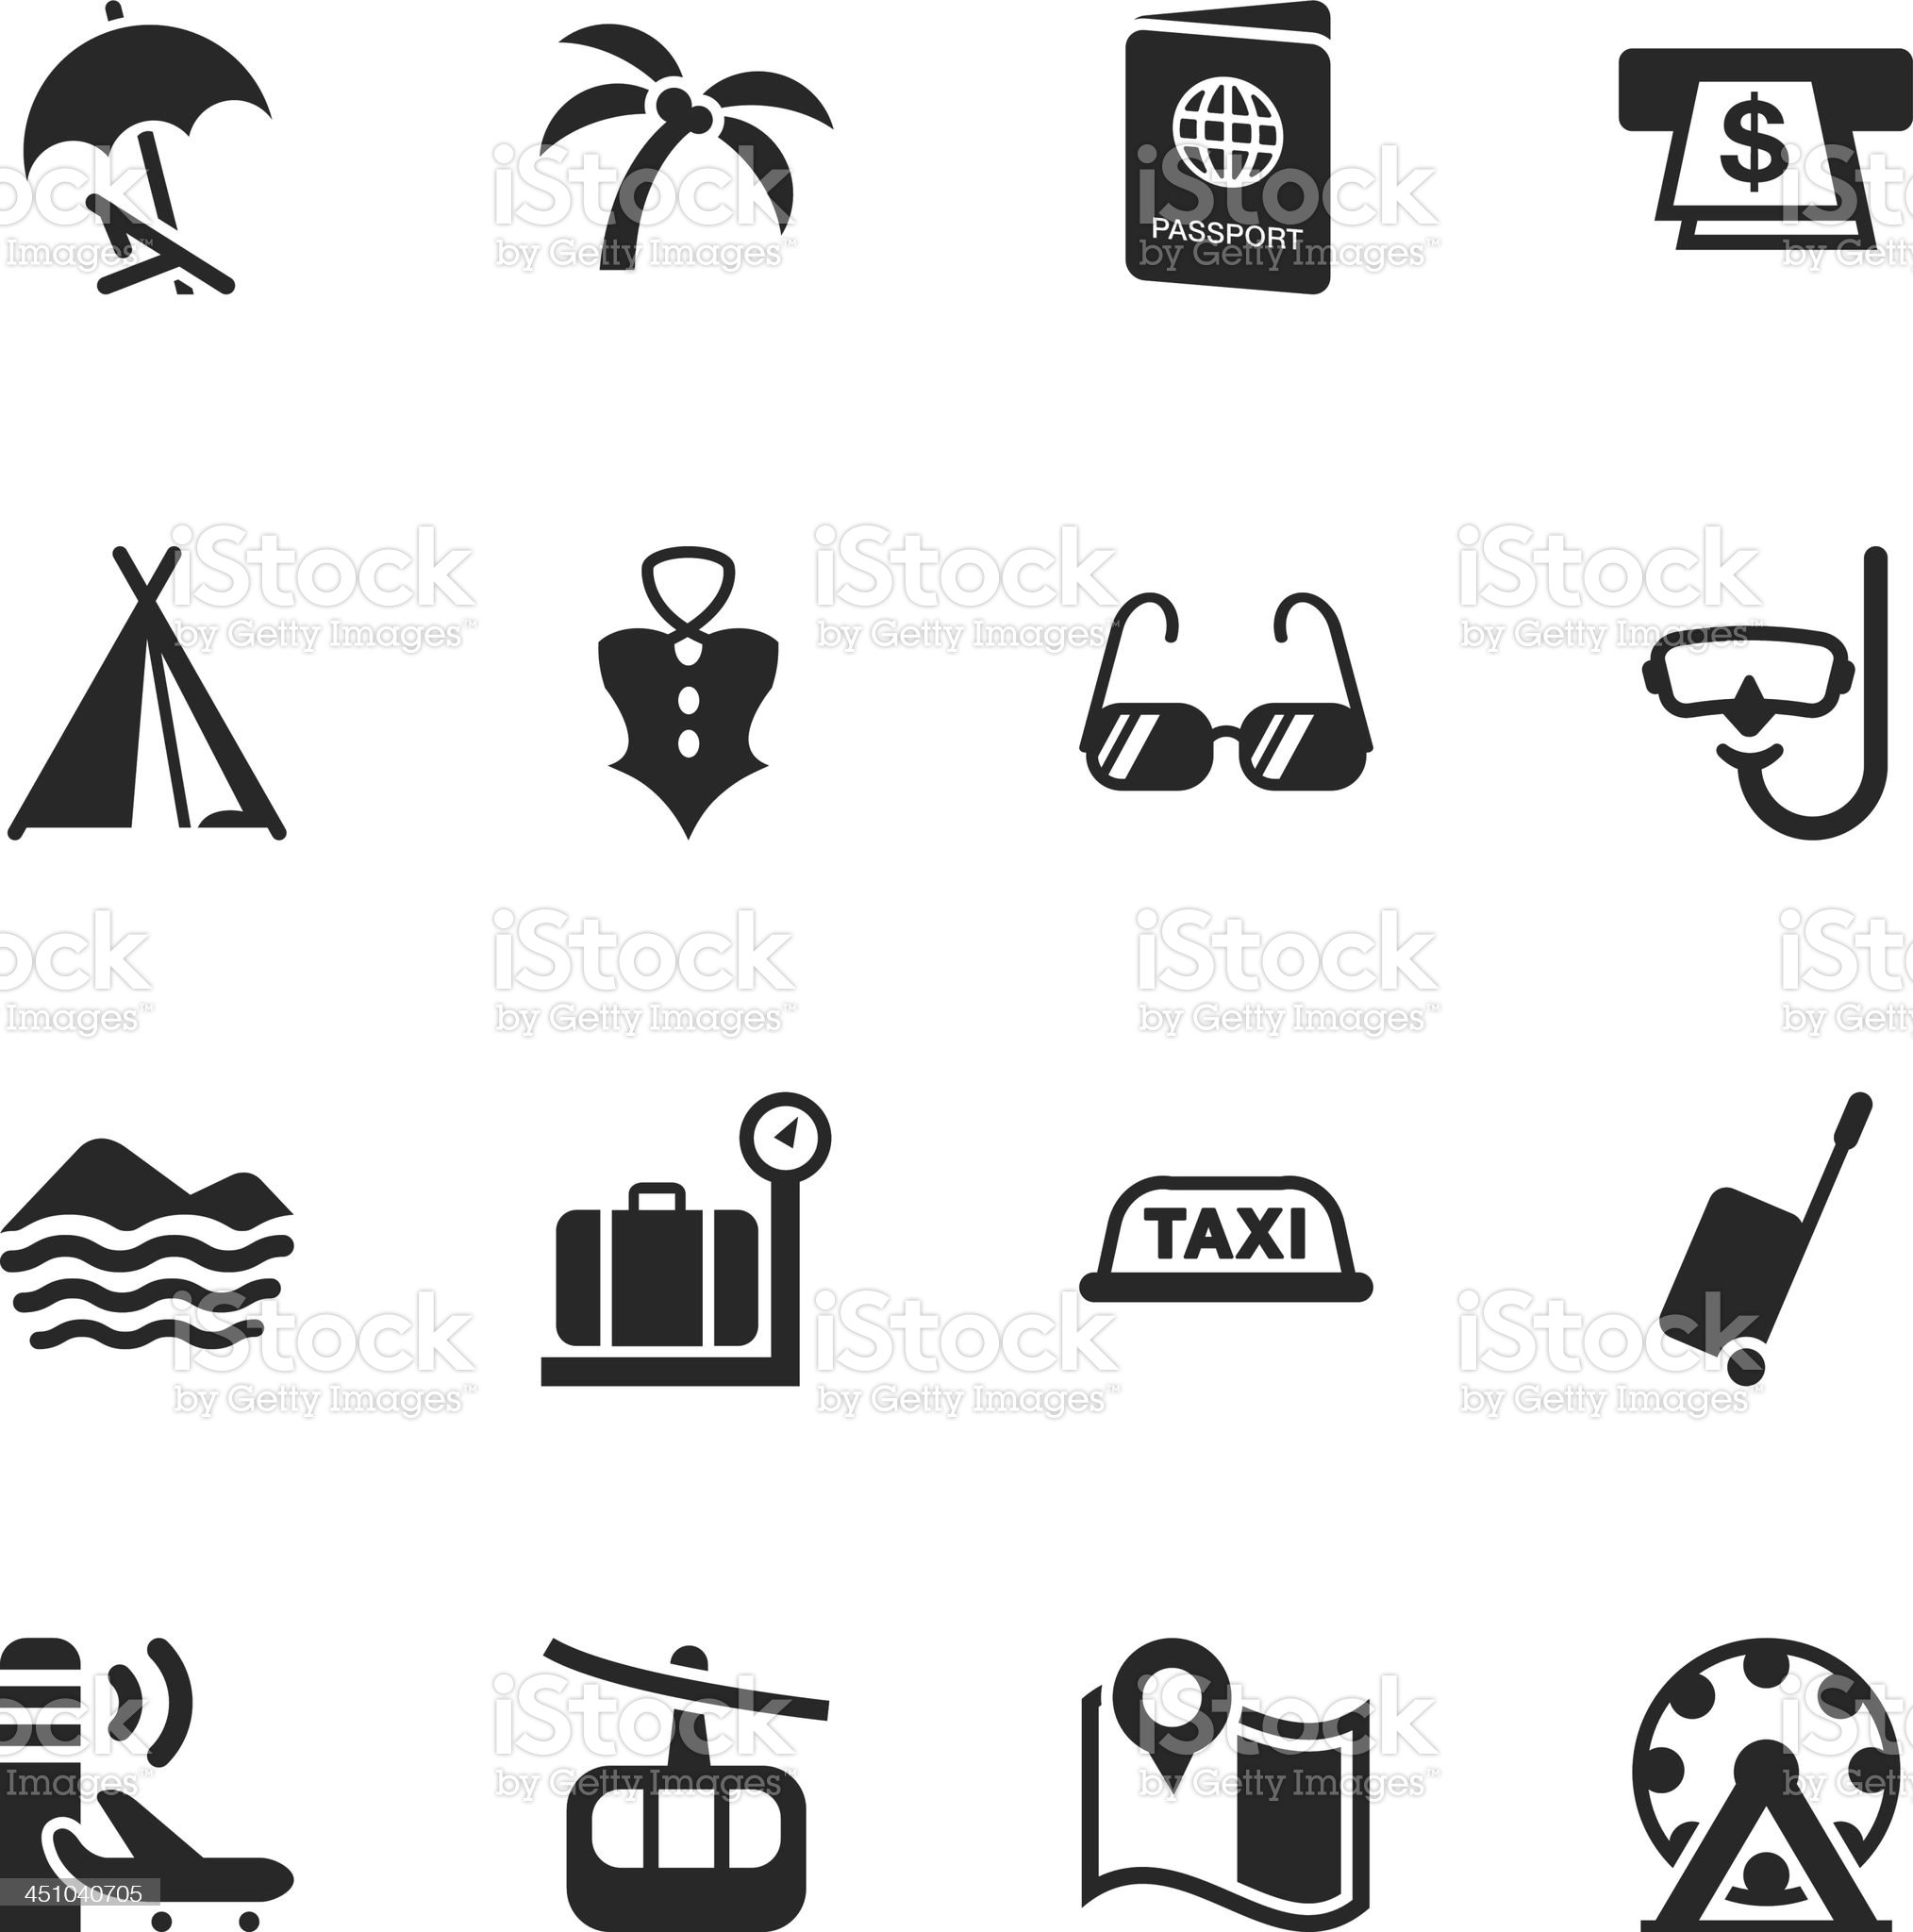 Travel and Vacation Silhouette Icons | Set 2 royalty-free stock vector art